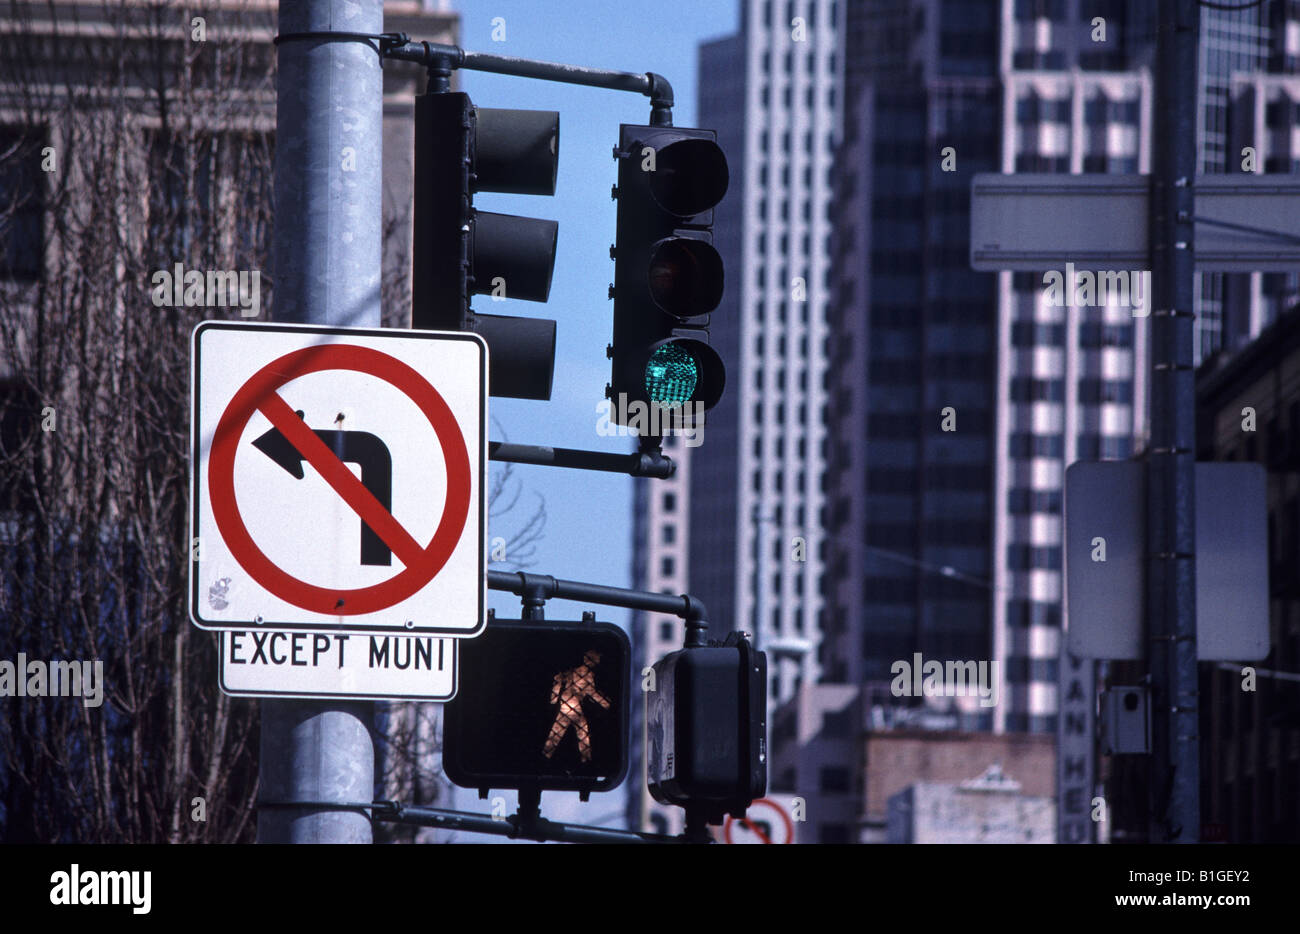 traffic light and no left turn except buses sign in San Francisco - Stock Image